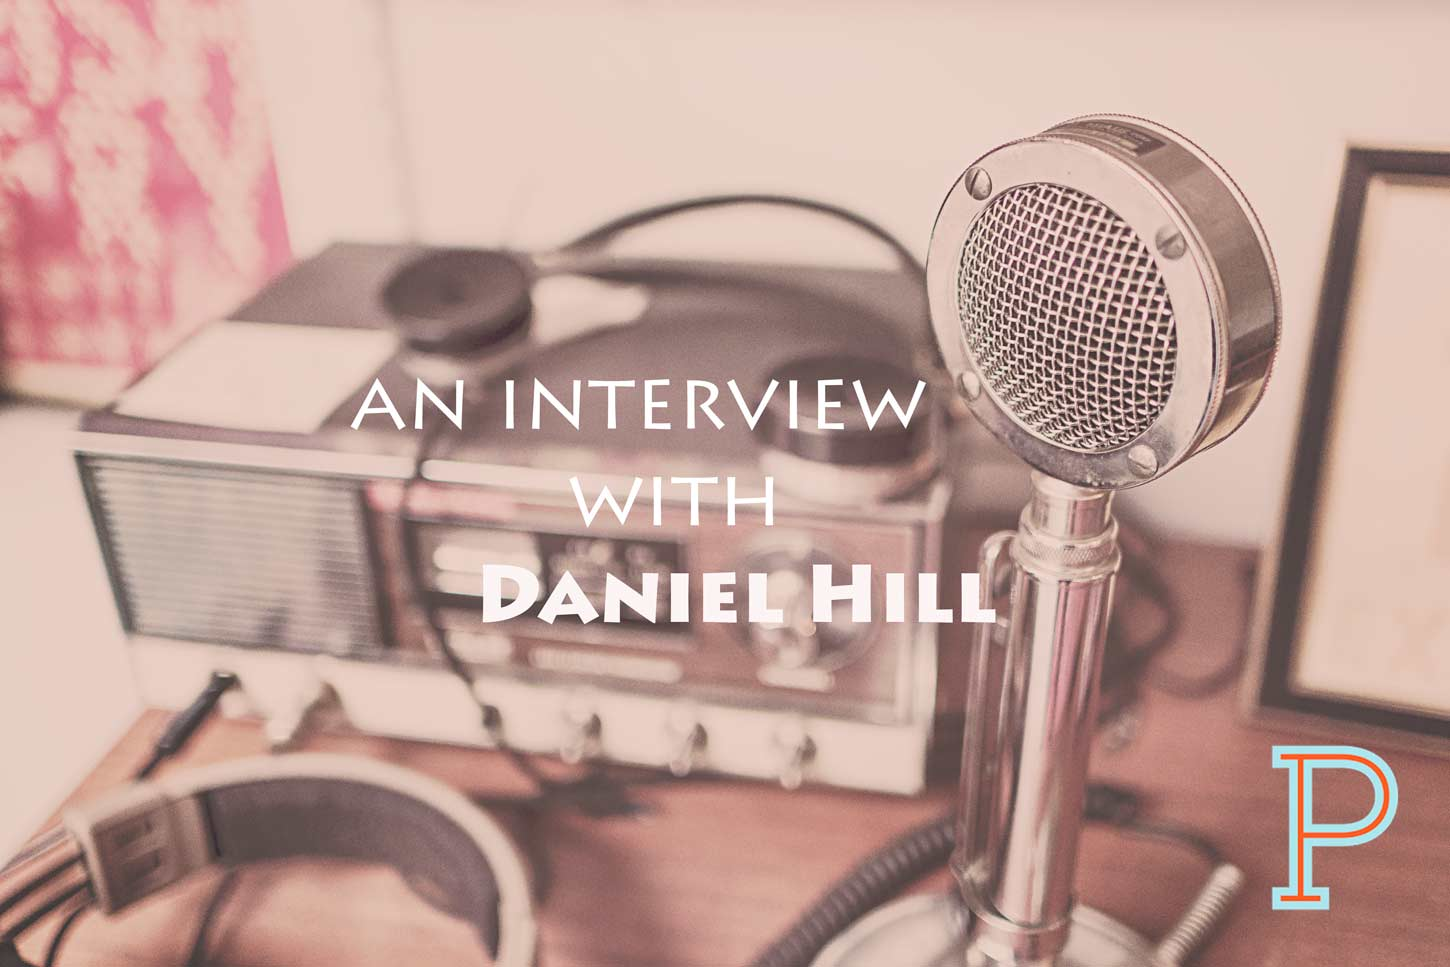 An-Interview-with-Daniel-Hill-Project-Pastor-1450